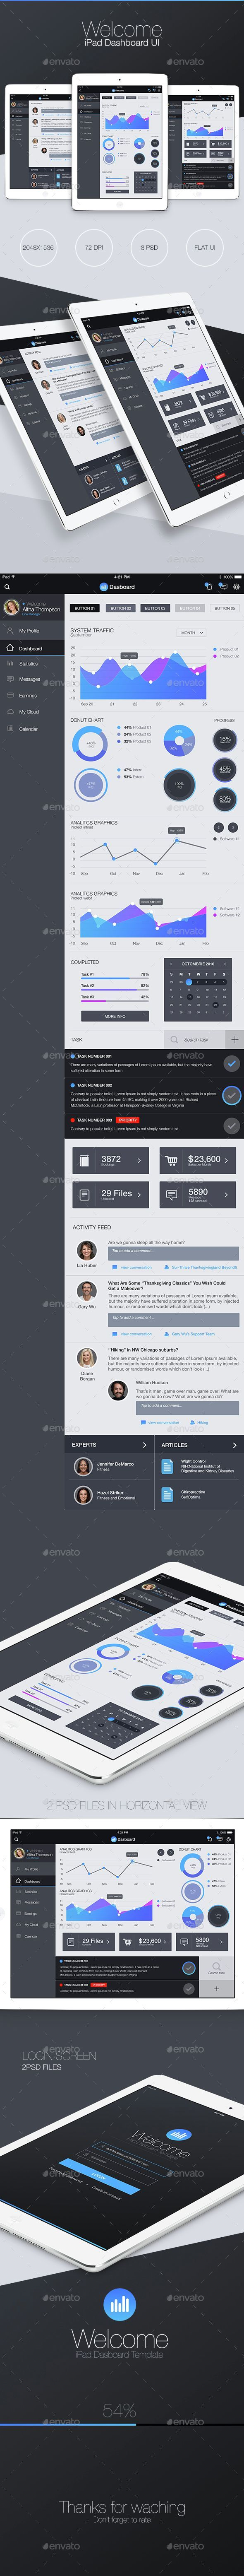 iPad Dashboard UI (User Interfaces). If you like UX, design, or design thinking, check out theuxblog.com